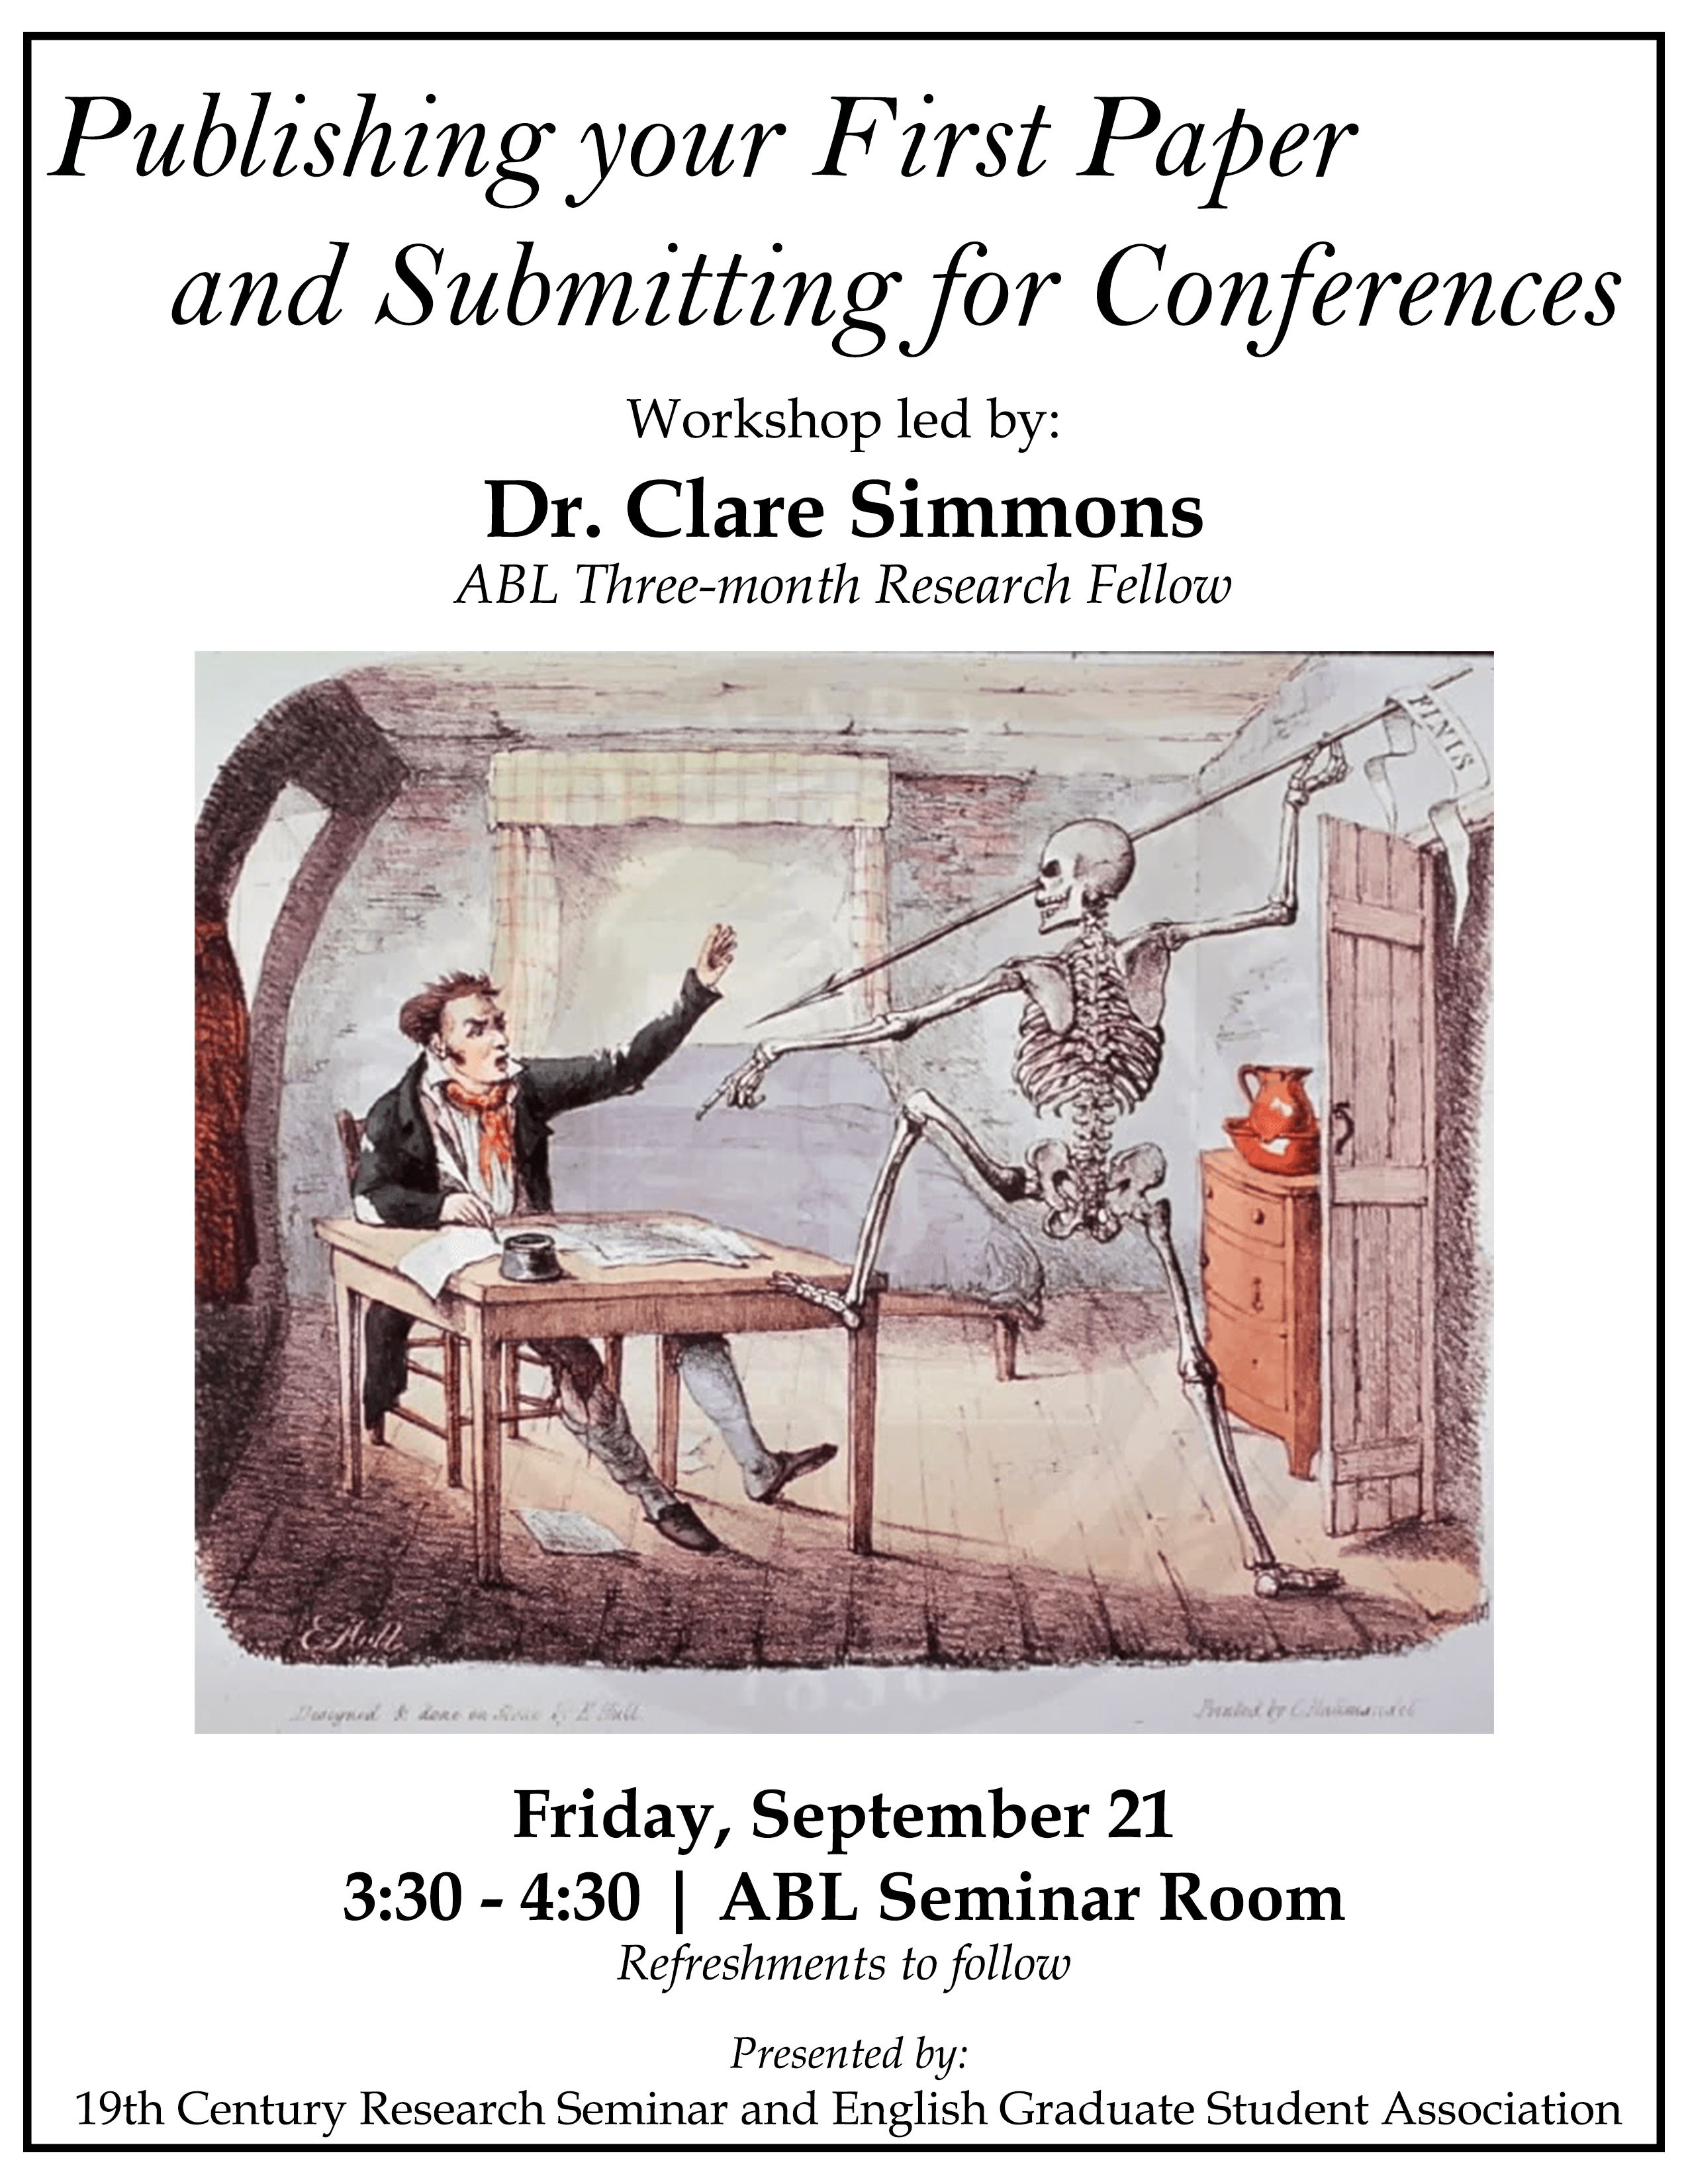 Flyer for the Workshop led by Prof. Clare Simmons